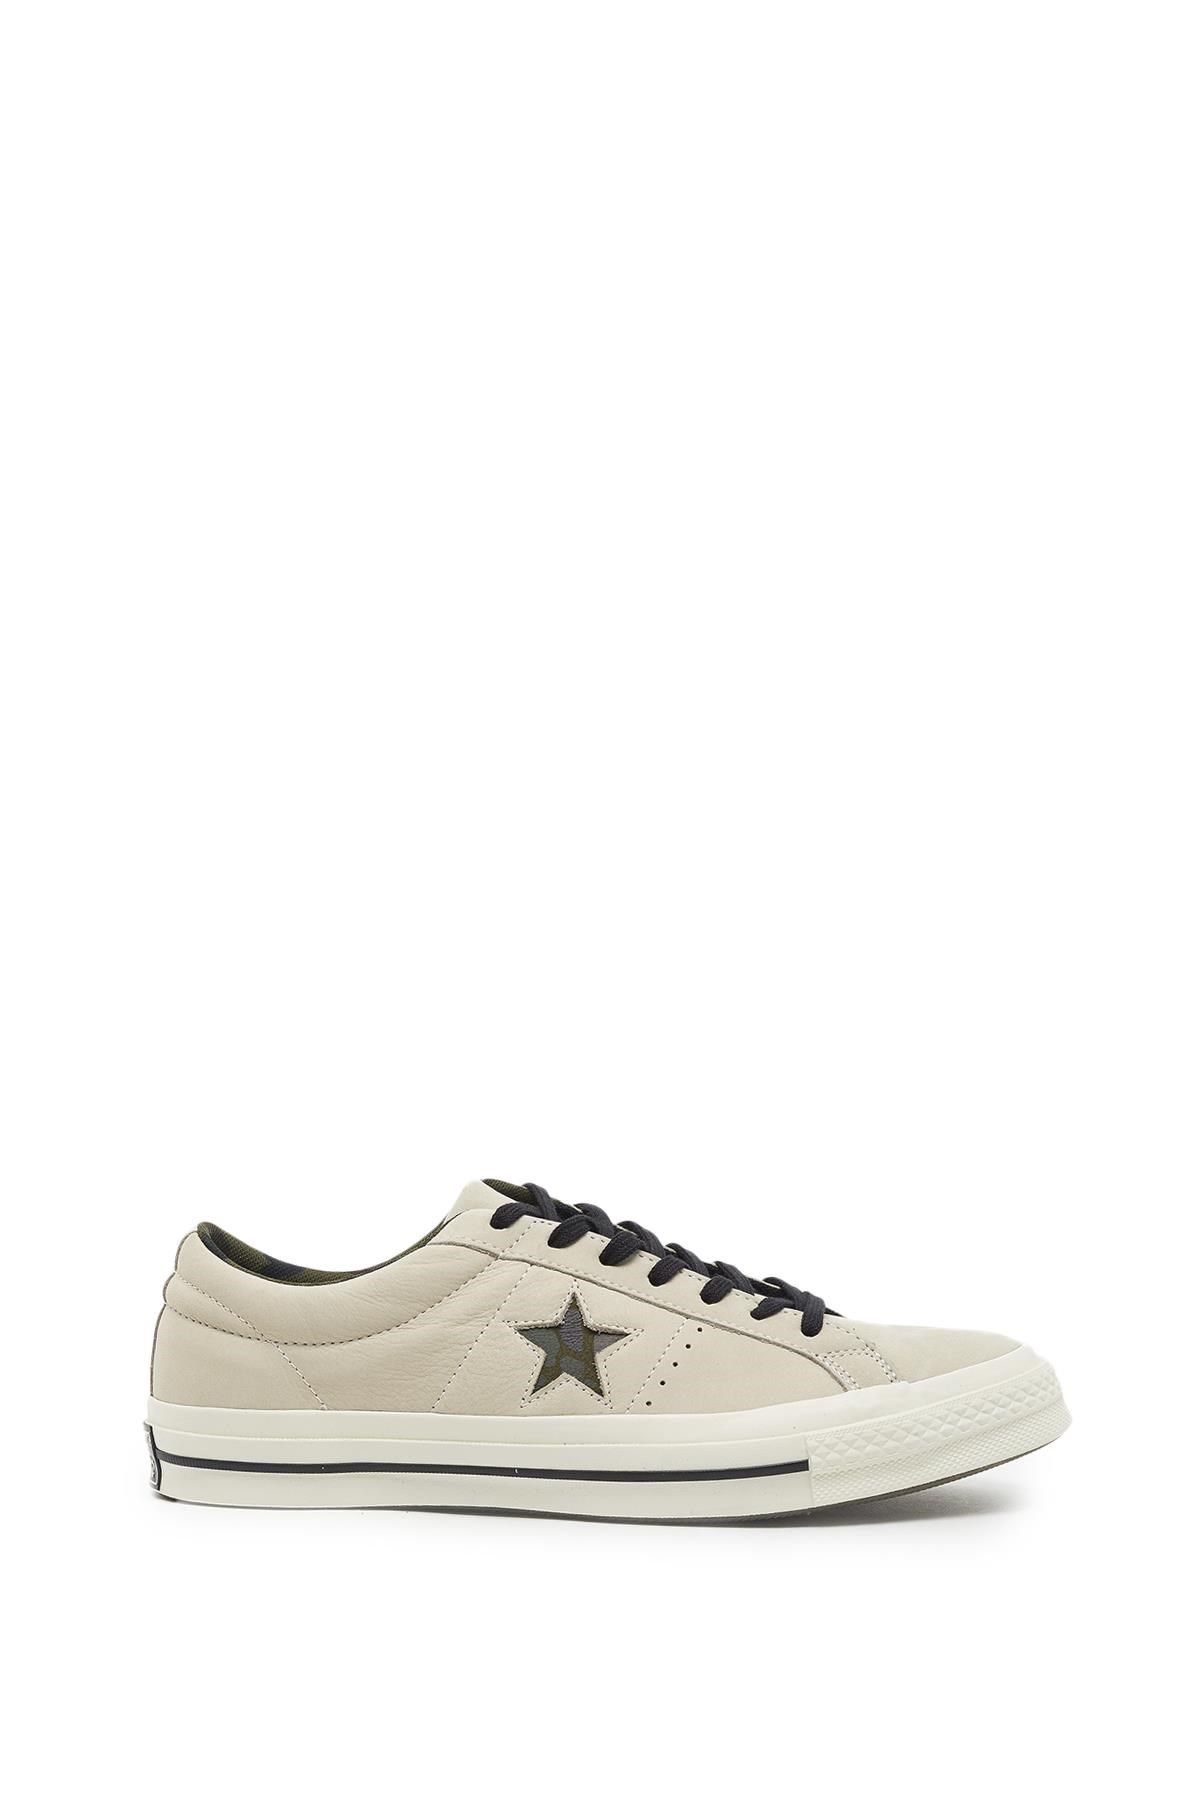 converse one star pro sneakers converse shoes converse in 2019